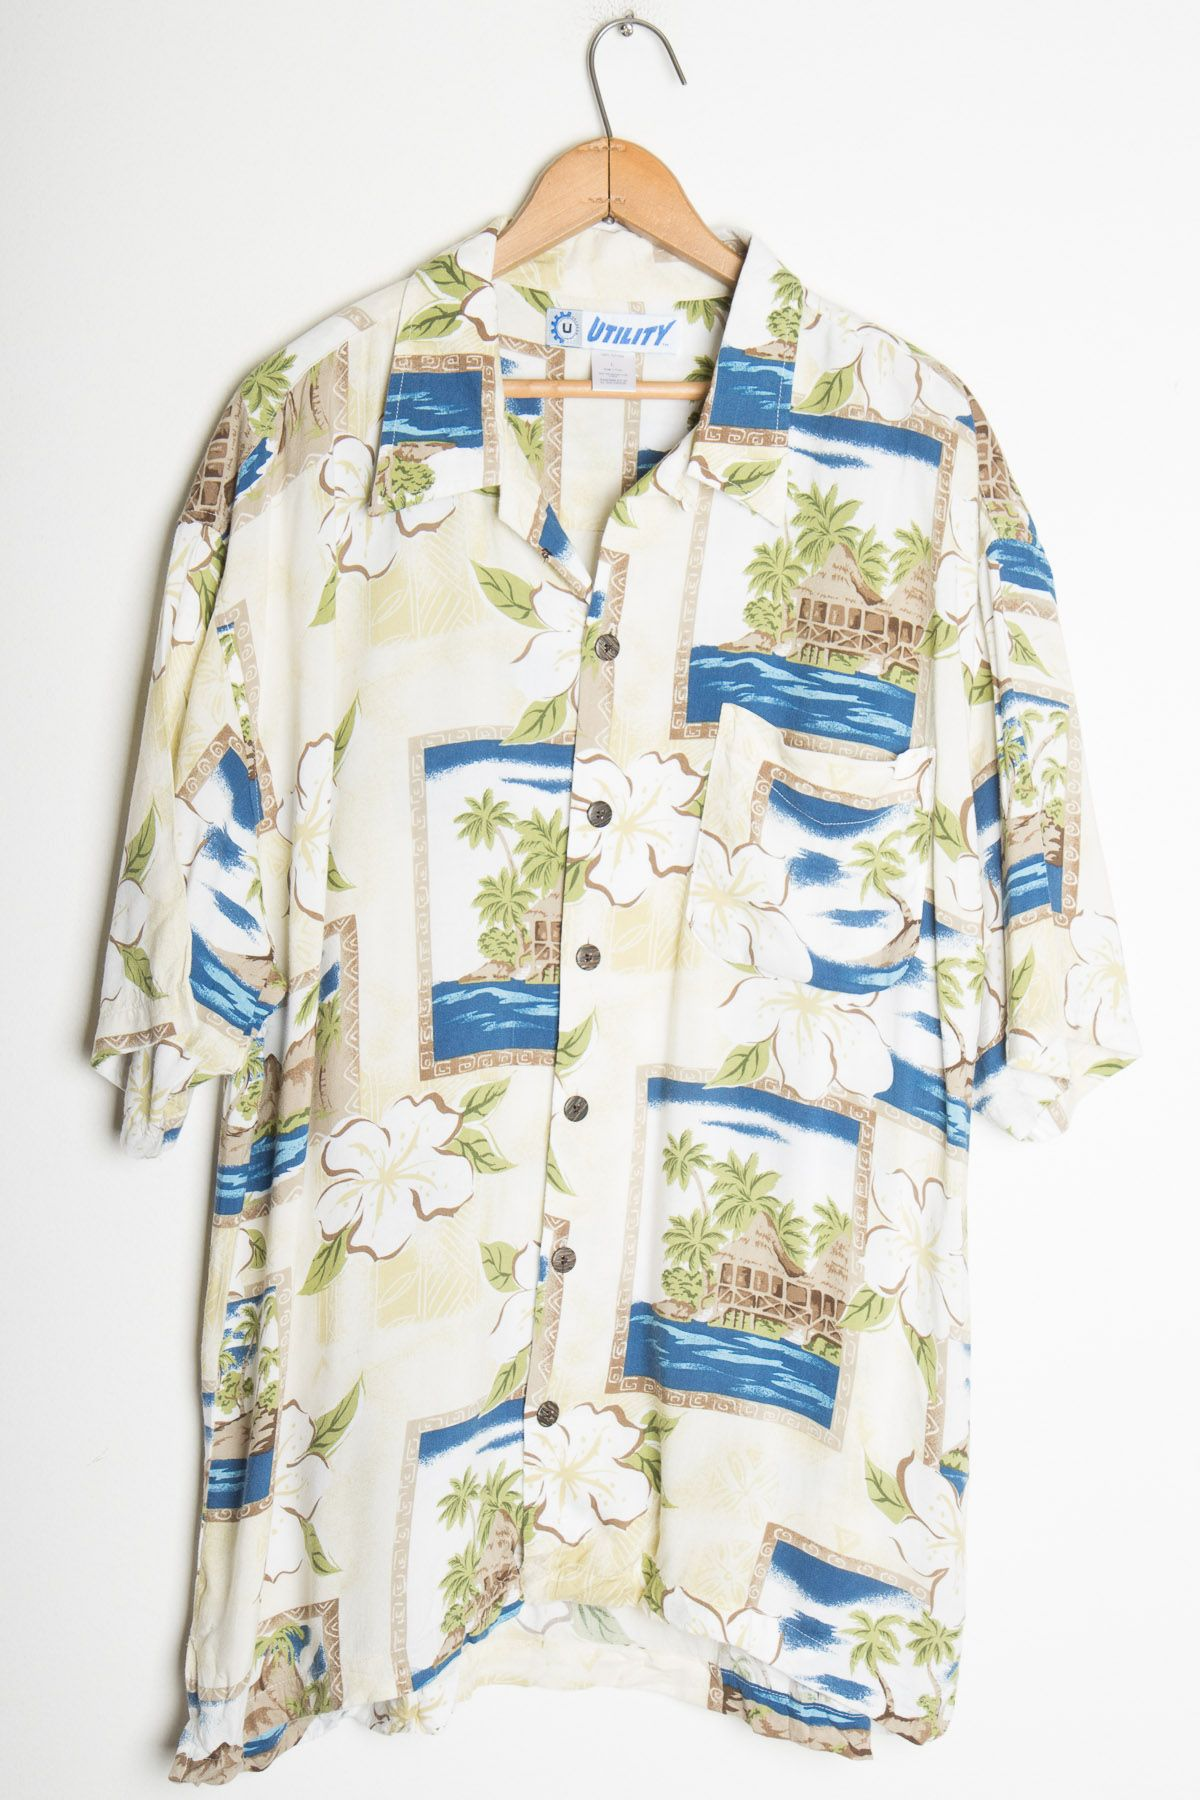 0d866621 Not every hawaiian shirt has to have flashy bright colors. Maybe this laid  back shirt is just what you need!